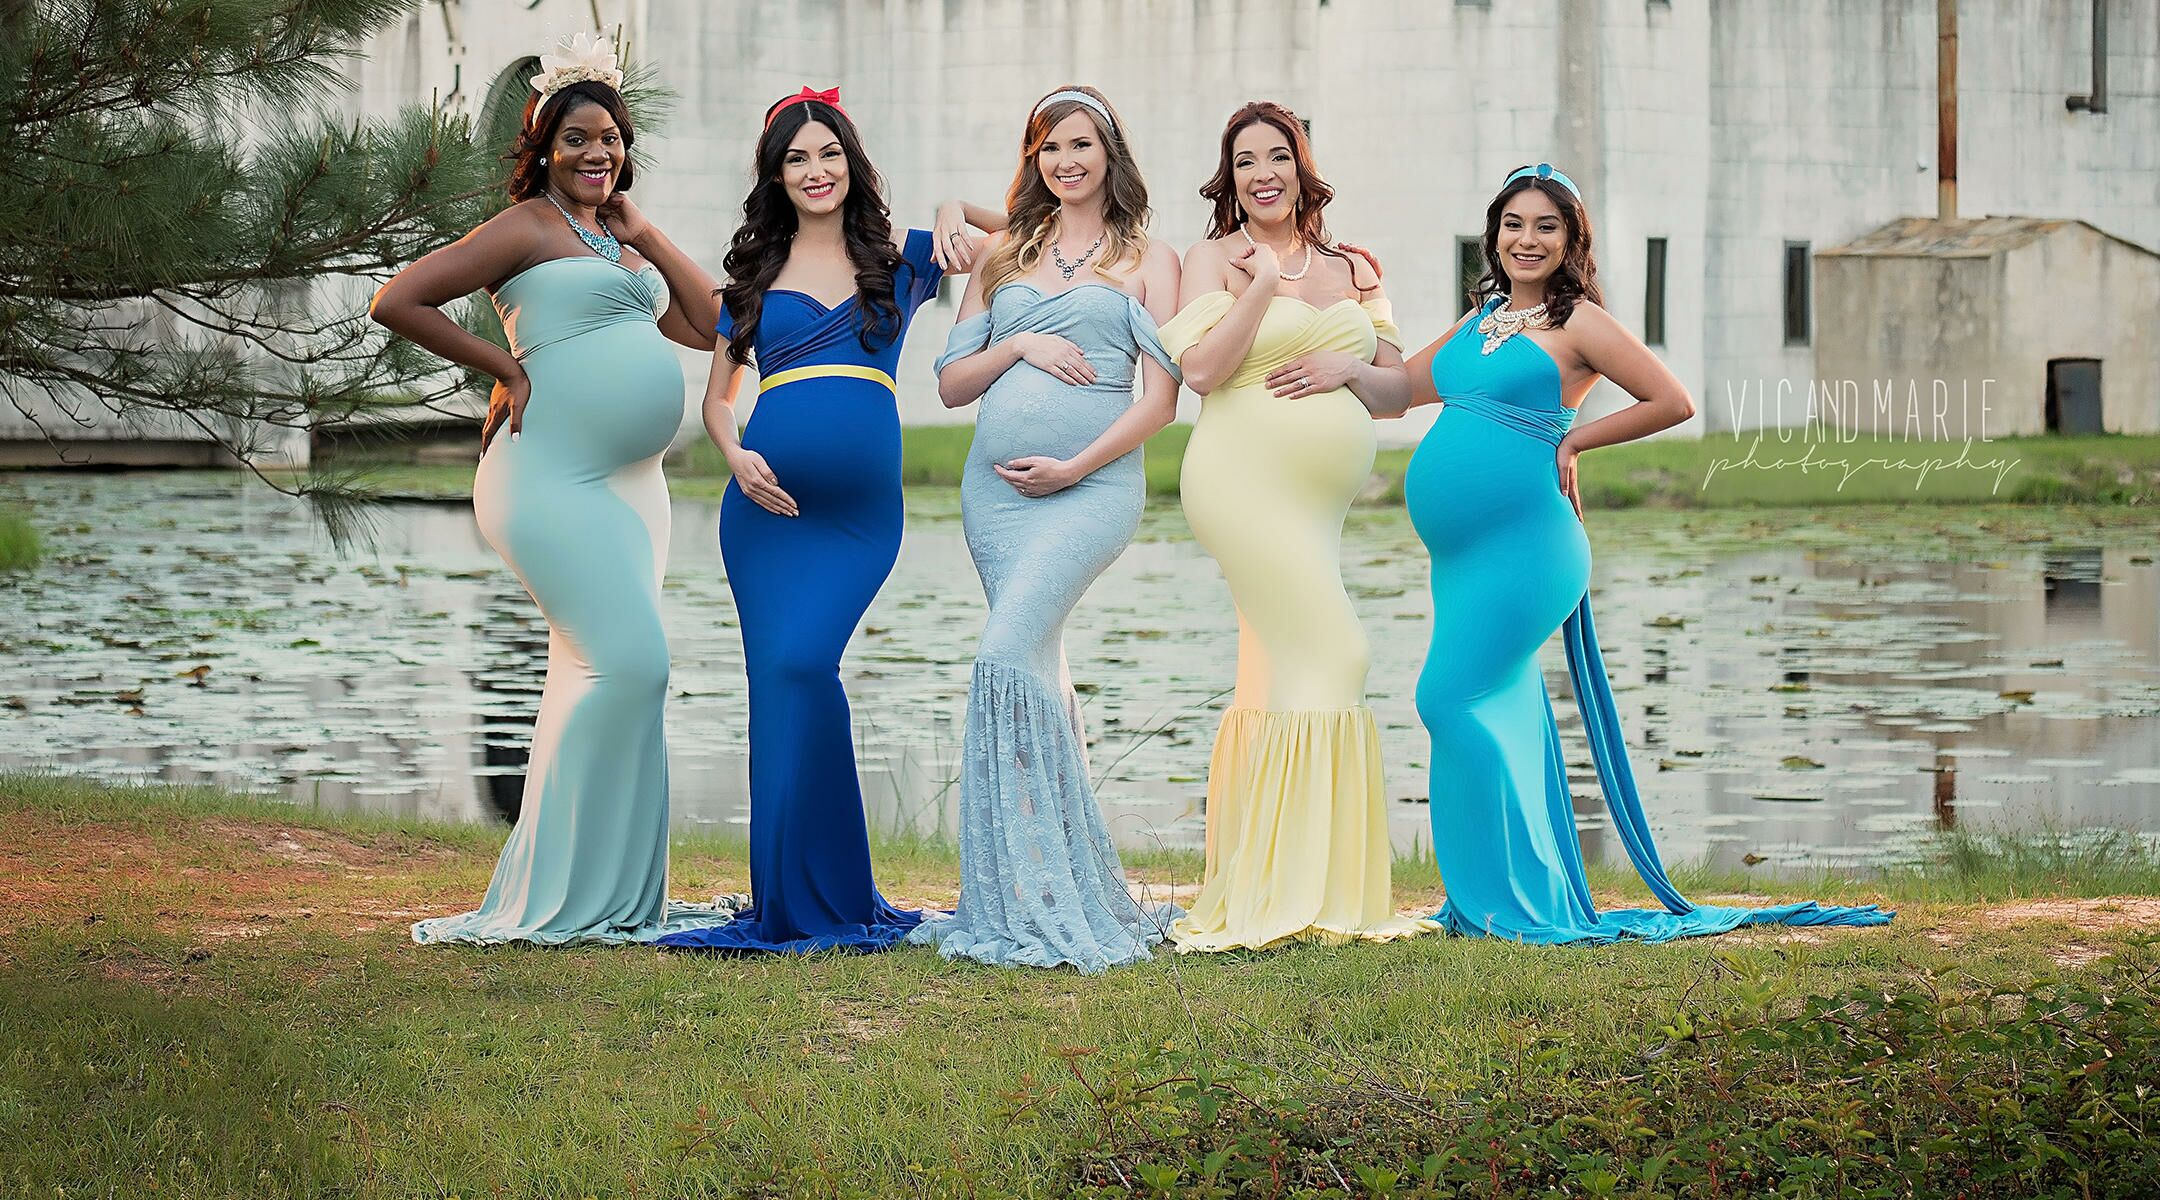 b226c7da6e4 5 Strangers Come Together for Disney Princess Maternity Shoot